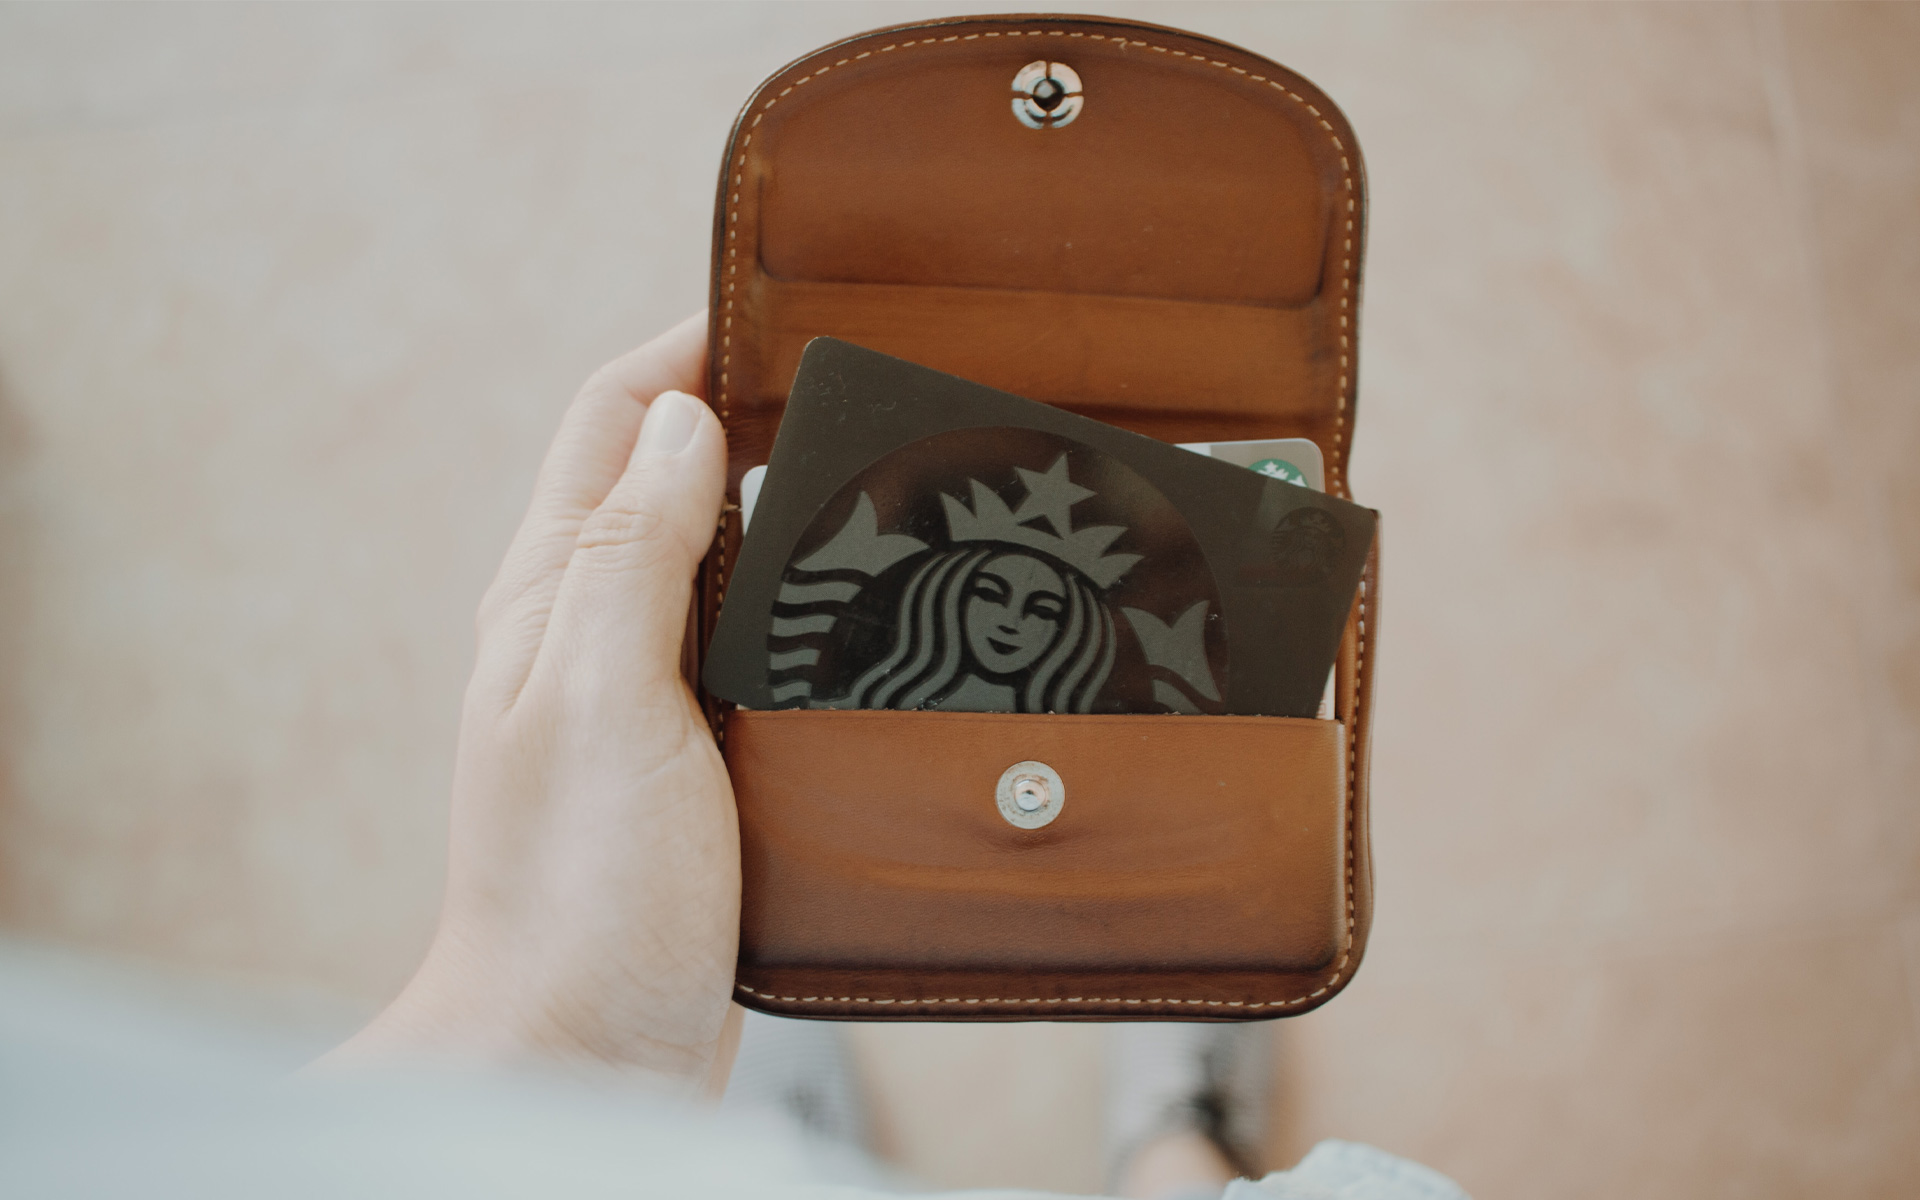 Starbucks customer loyalty card in a brown pouch